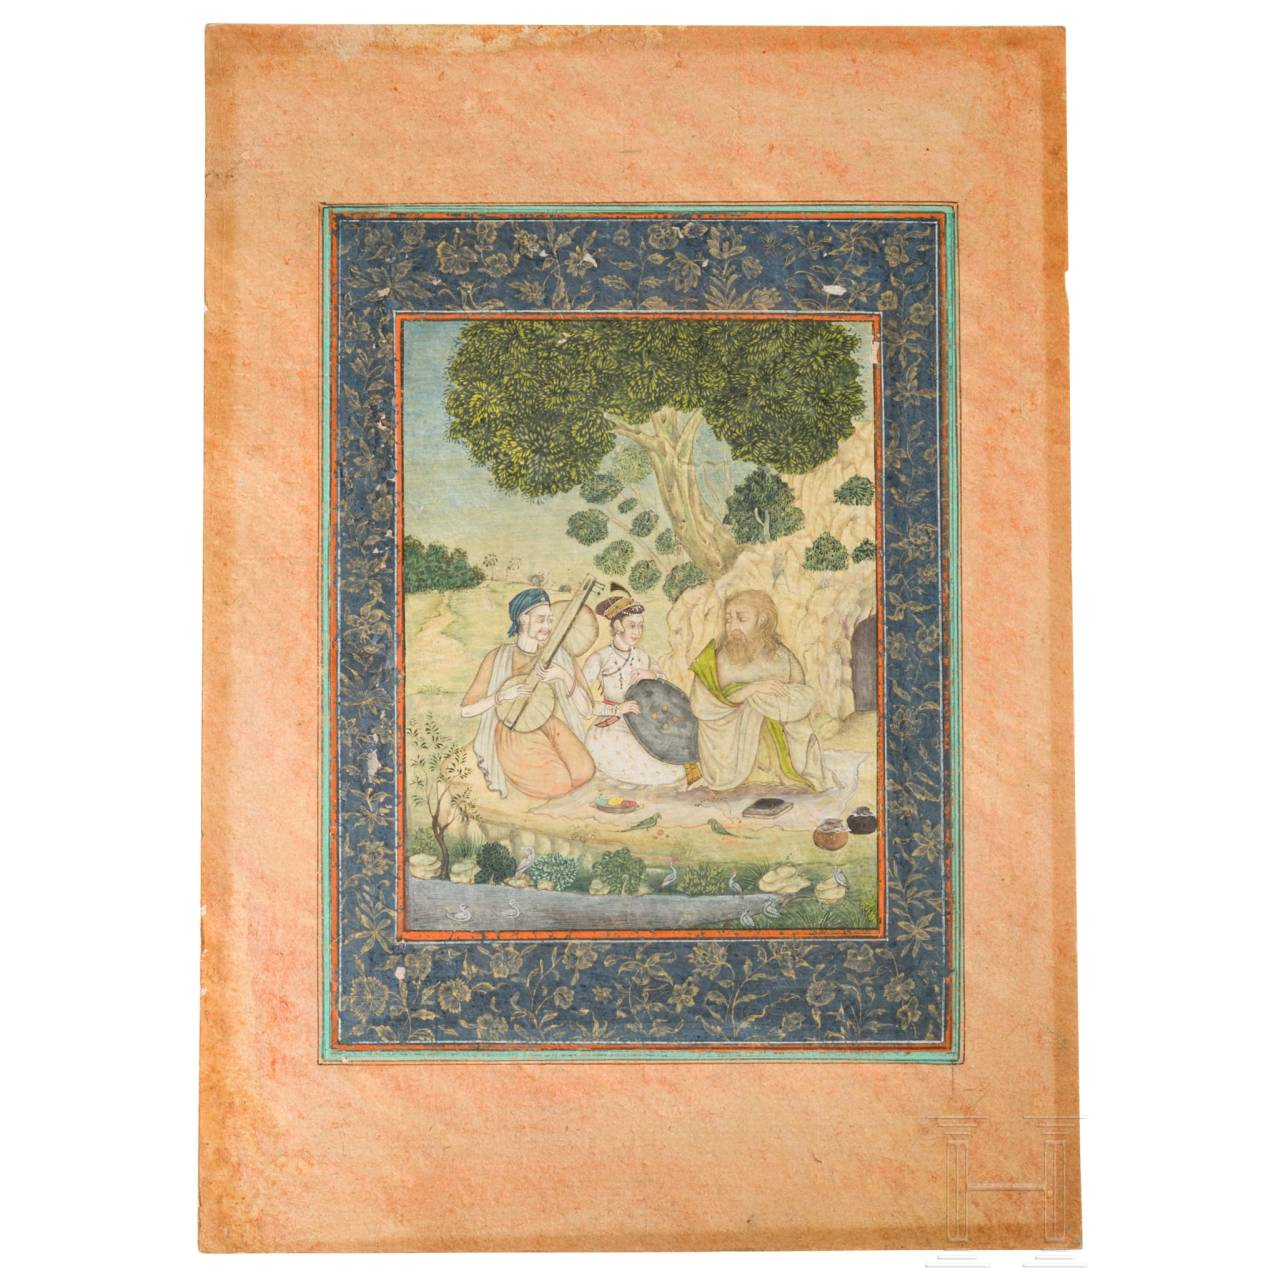 A gouache on paper of a Mogul, India, 1st half of 19th century